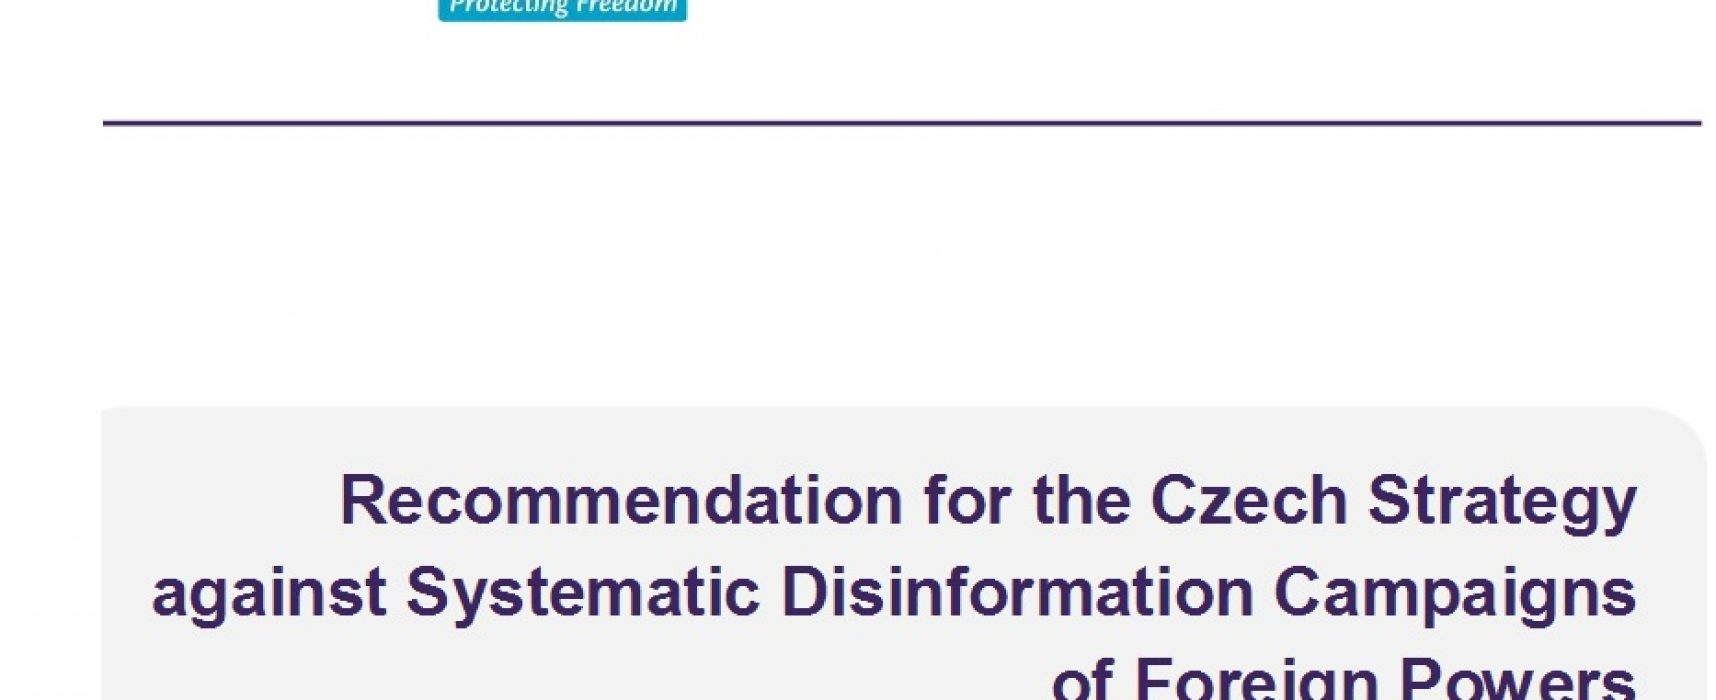 Recommendation for the Czech Strategy against Systematic Disinformation Campaigns of Foreign Powers